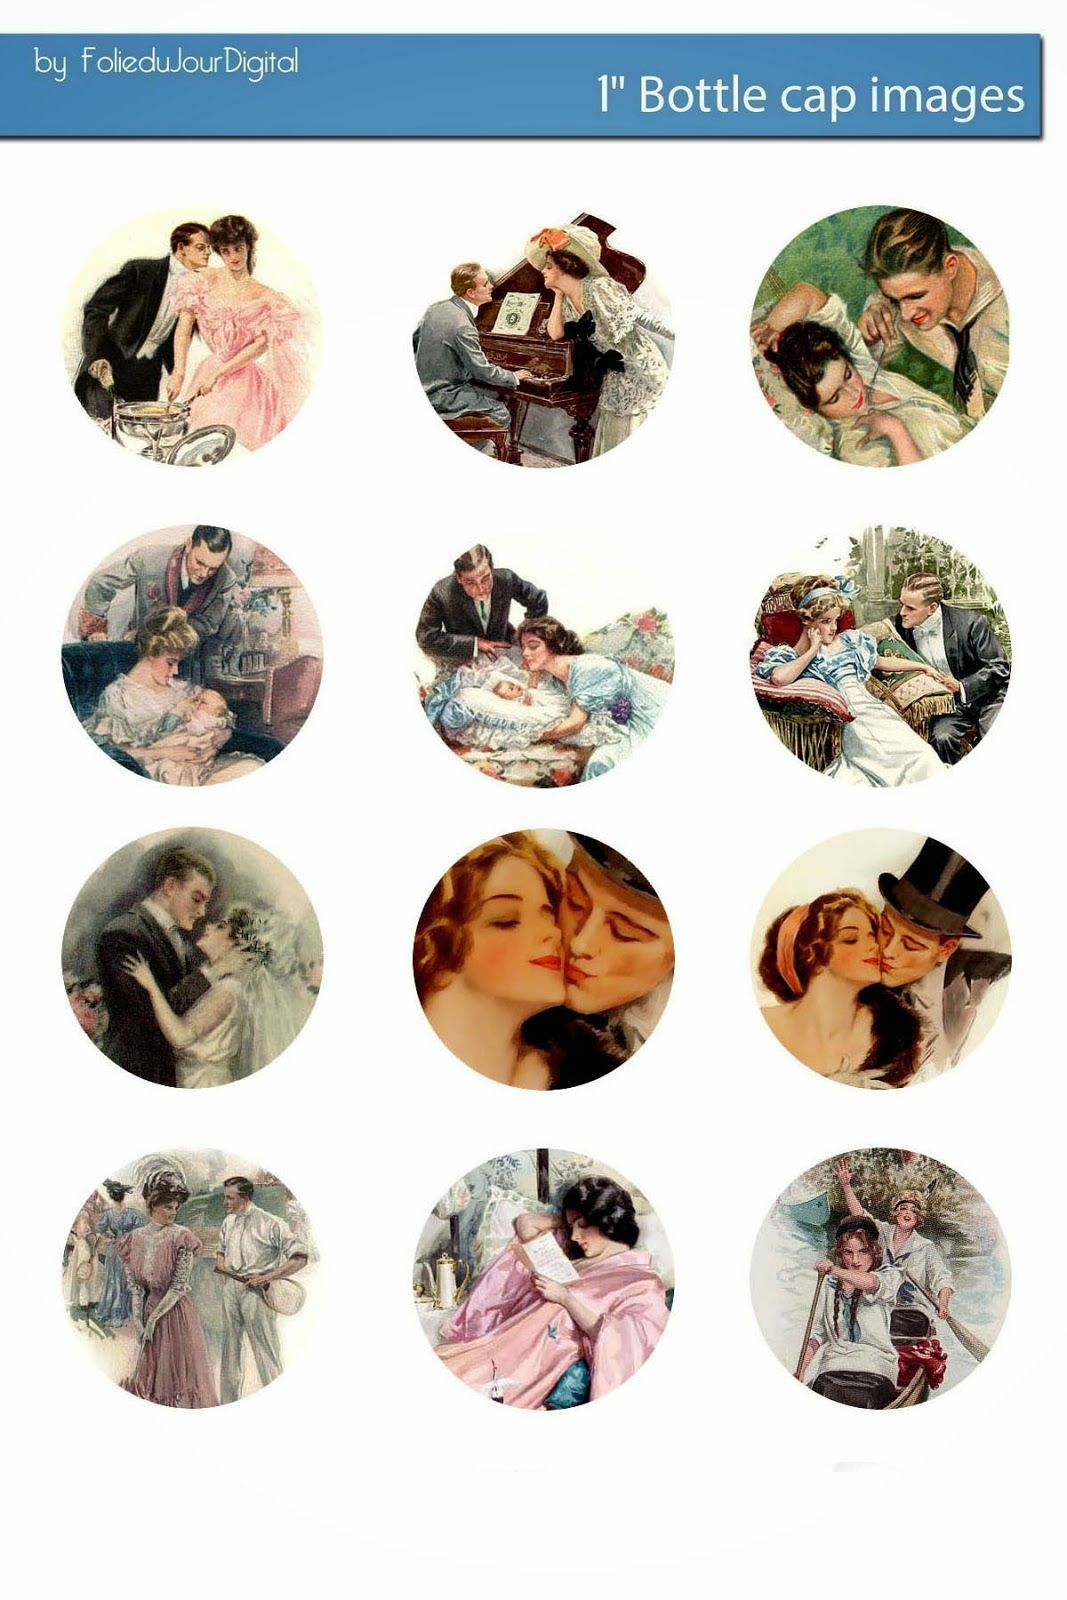 Free Bottle Cap Images: Harrison Fisher free bottle cap images template - vintage romantic couples love